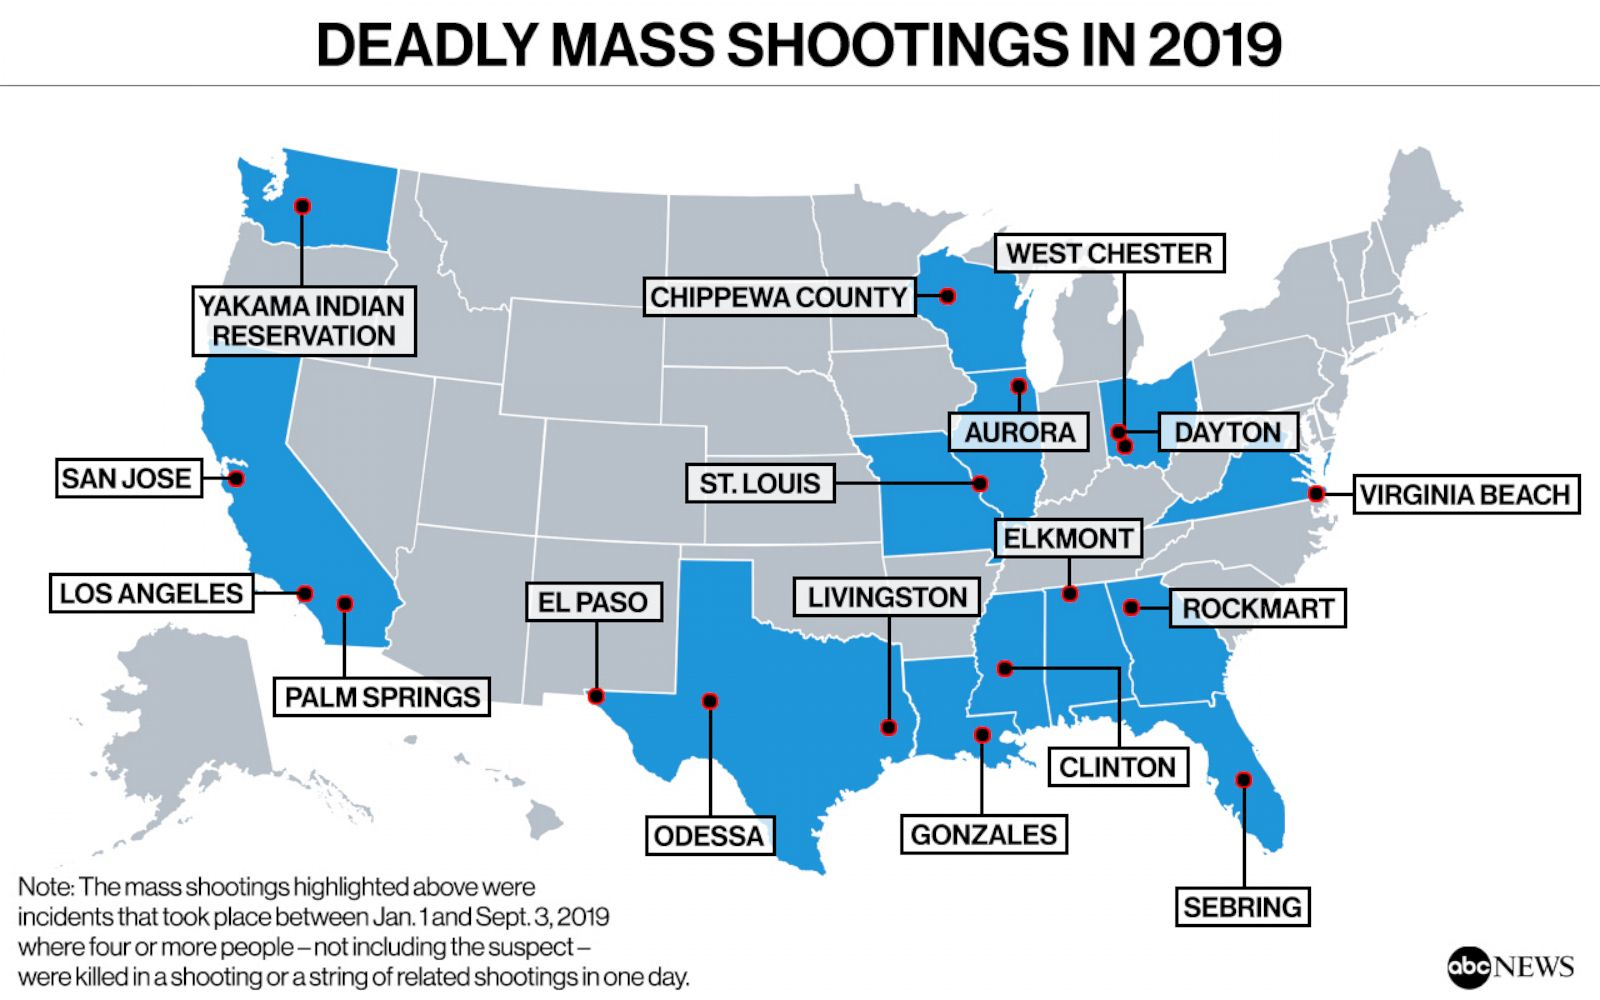 There have been at least 19 deadly mass shootings in the US